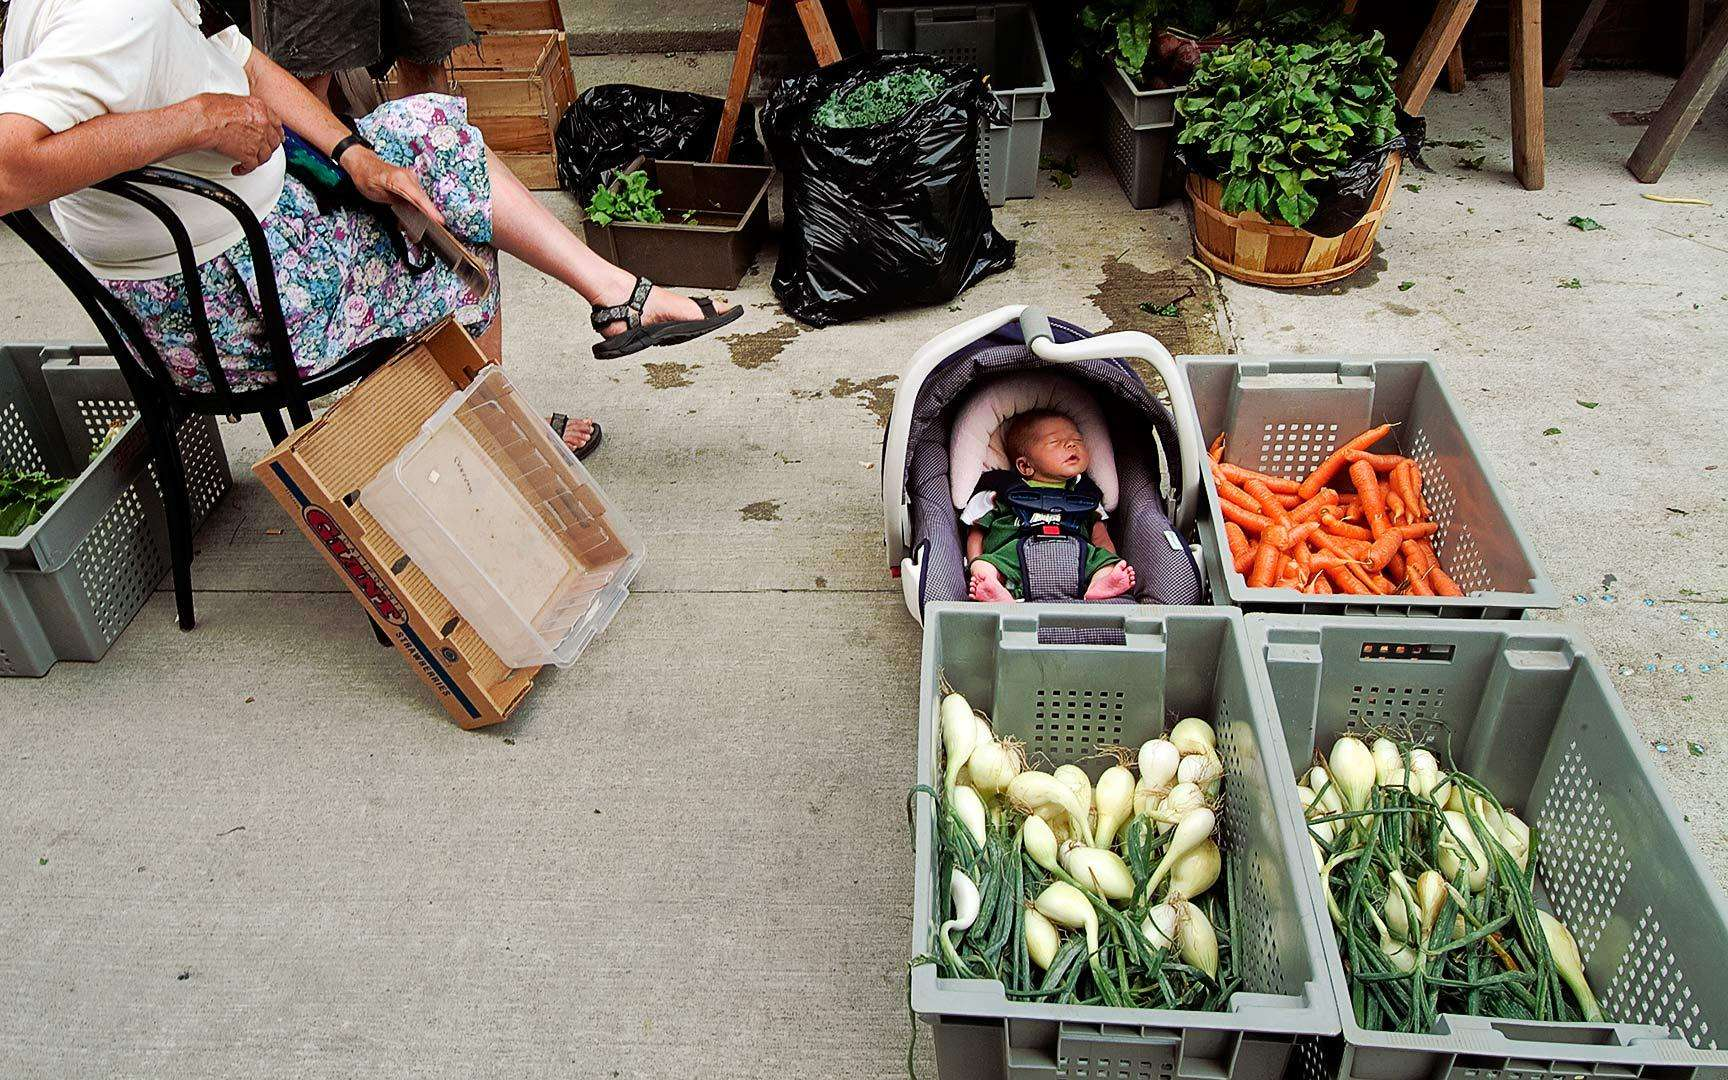 Outdoor organic farmers market Orange County, Massachusetts : On The Road : NY - Portrait Photographer Video, Architectural, Corporate Editorial Location Photography